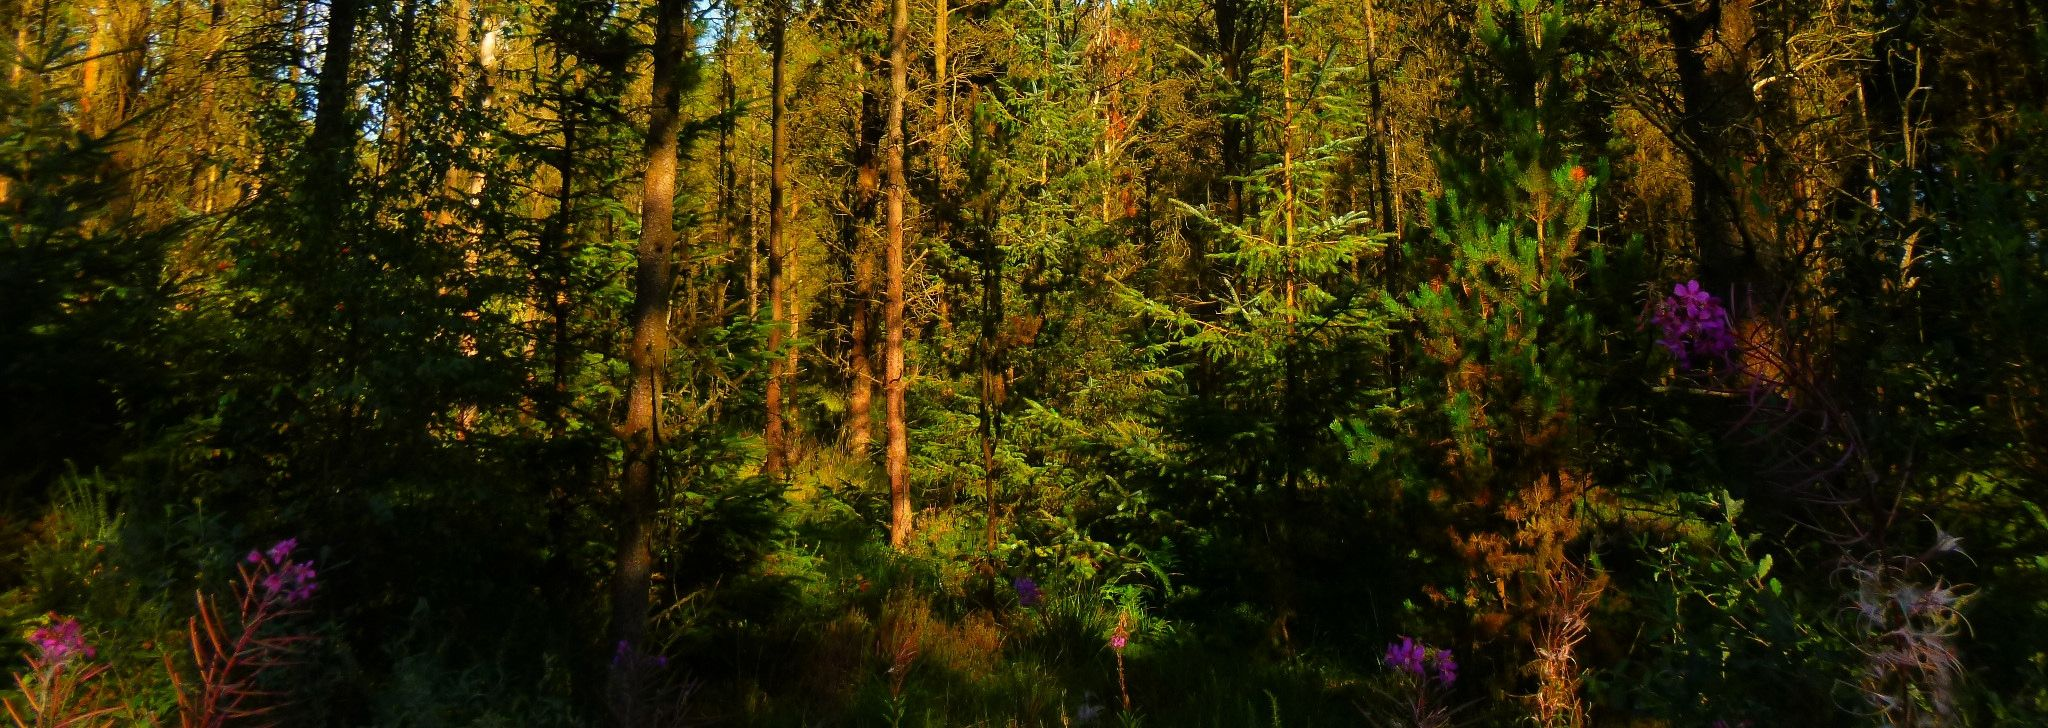 bethnina forest wales by chris.adams.3557